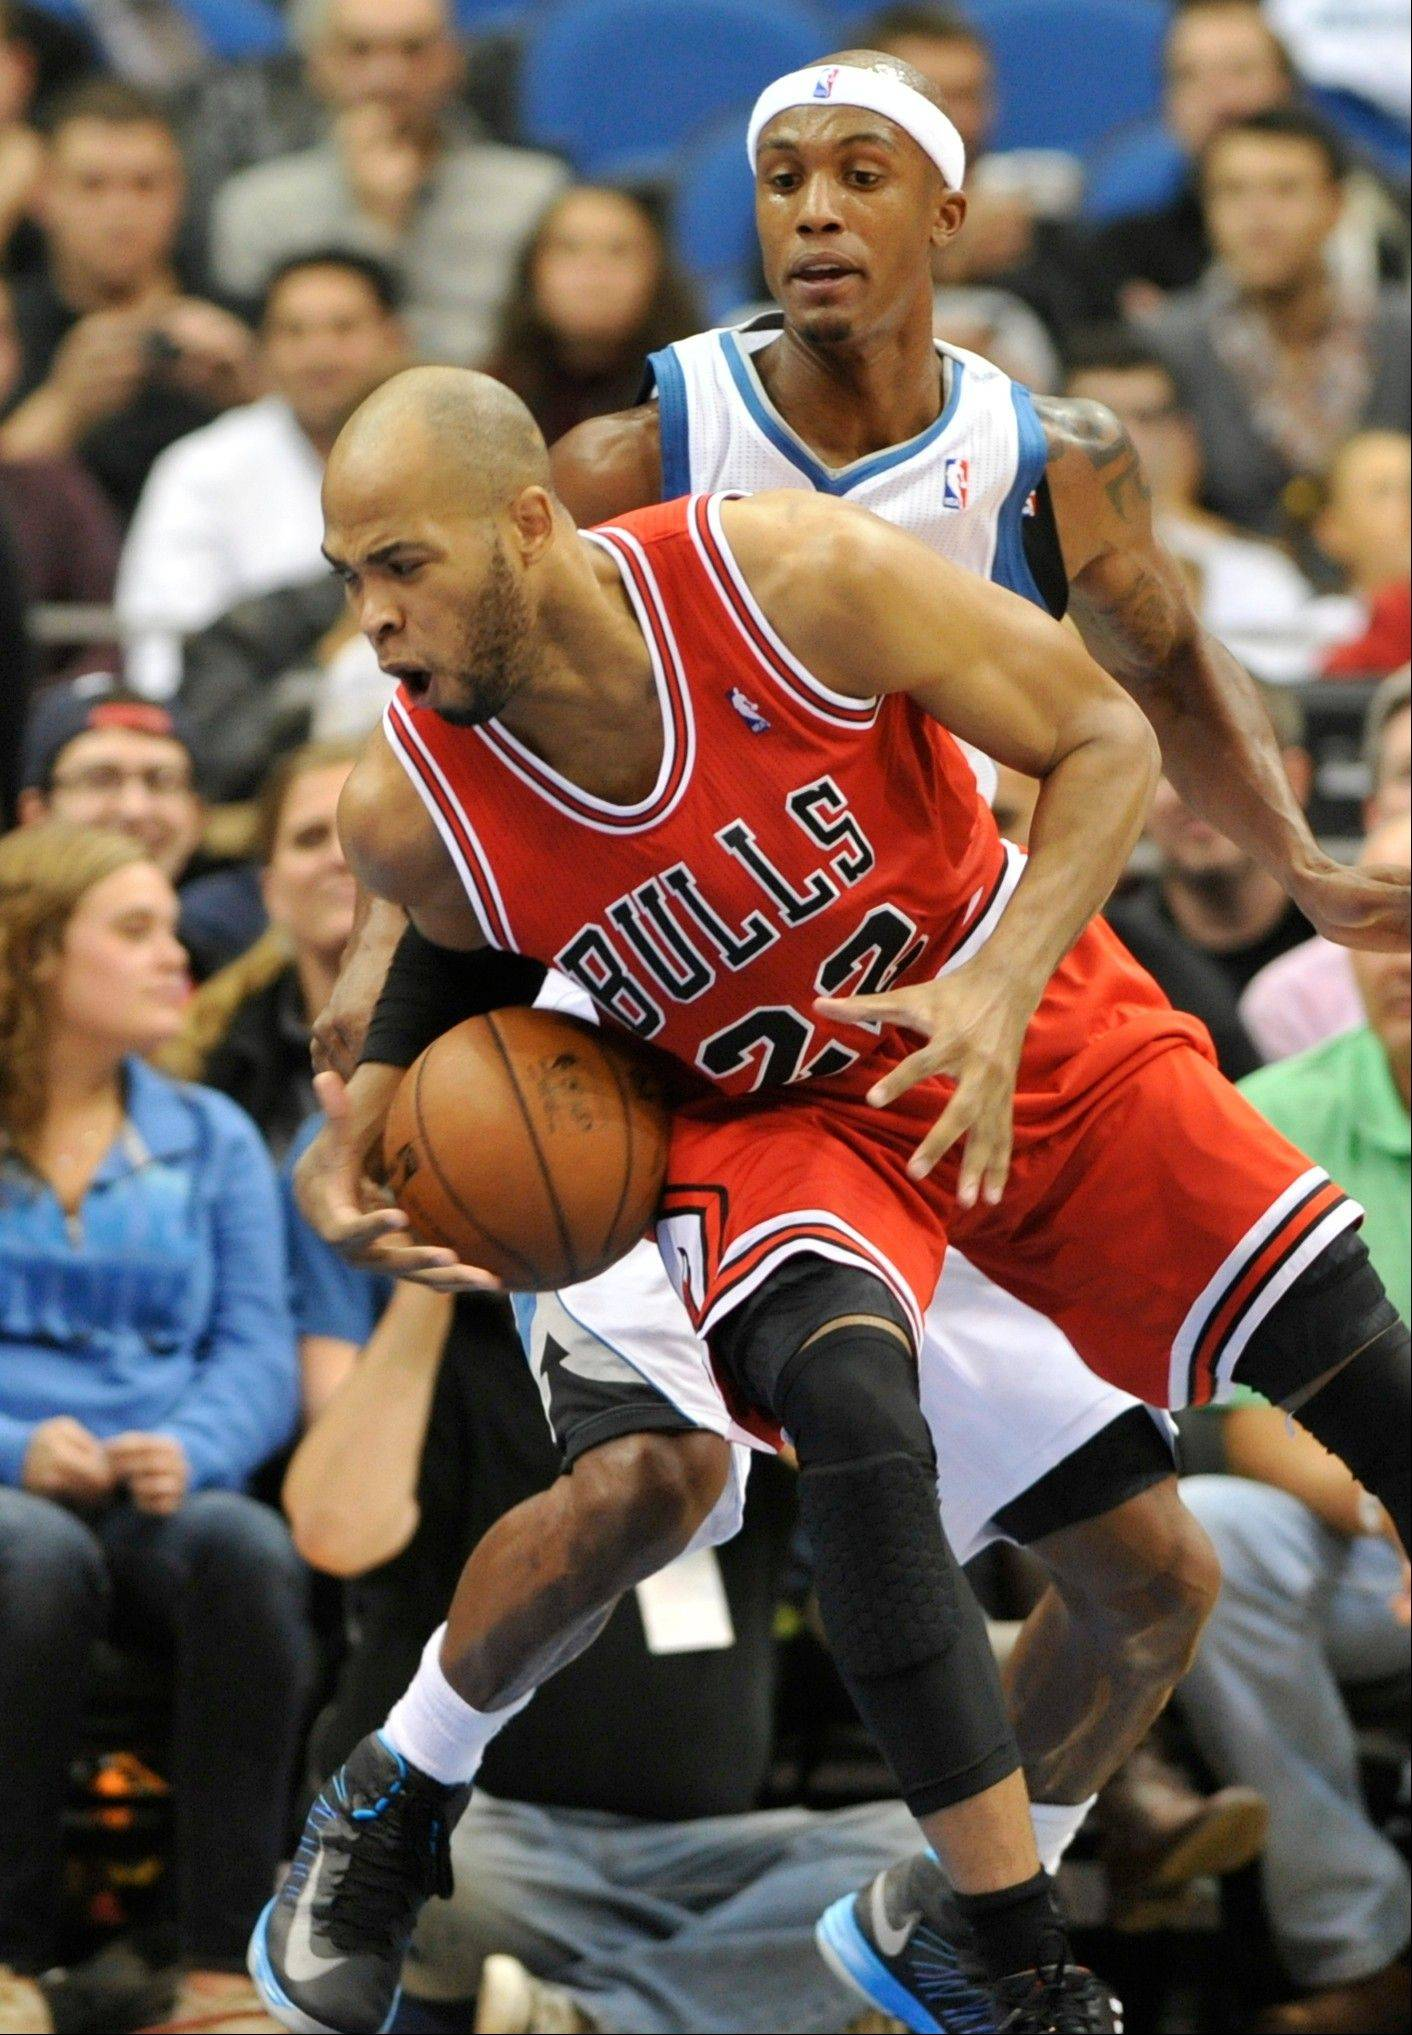 Bulls lose to Timberwolves 82-75 in preseason